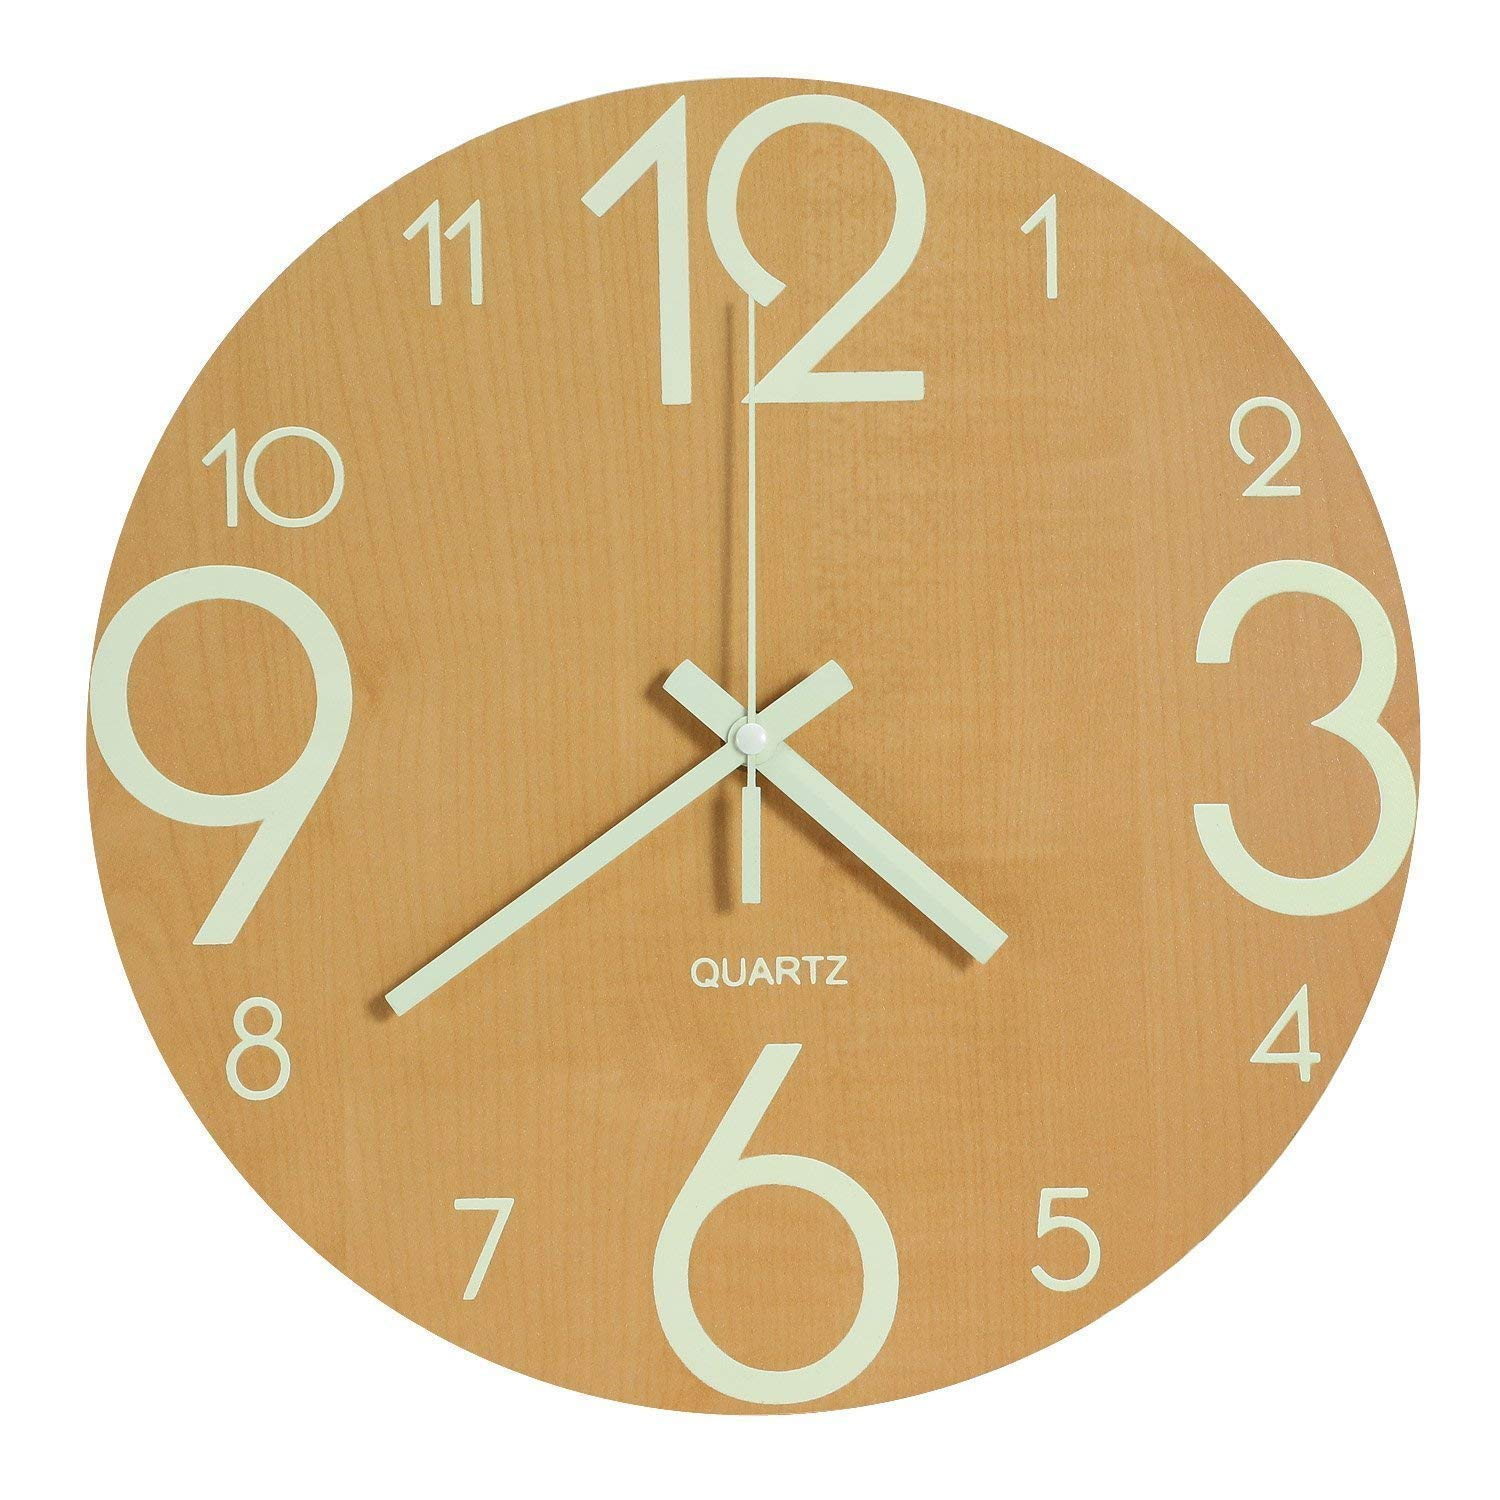 Genbaly Luminous Wall Clock, 12 inch Wooden Silent Non-Ticking Kitchen Wall Clocks with Night Lights for Indoor/Outdoor Living Room Bedroom Decor Battery Operated (Wood Color)